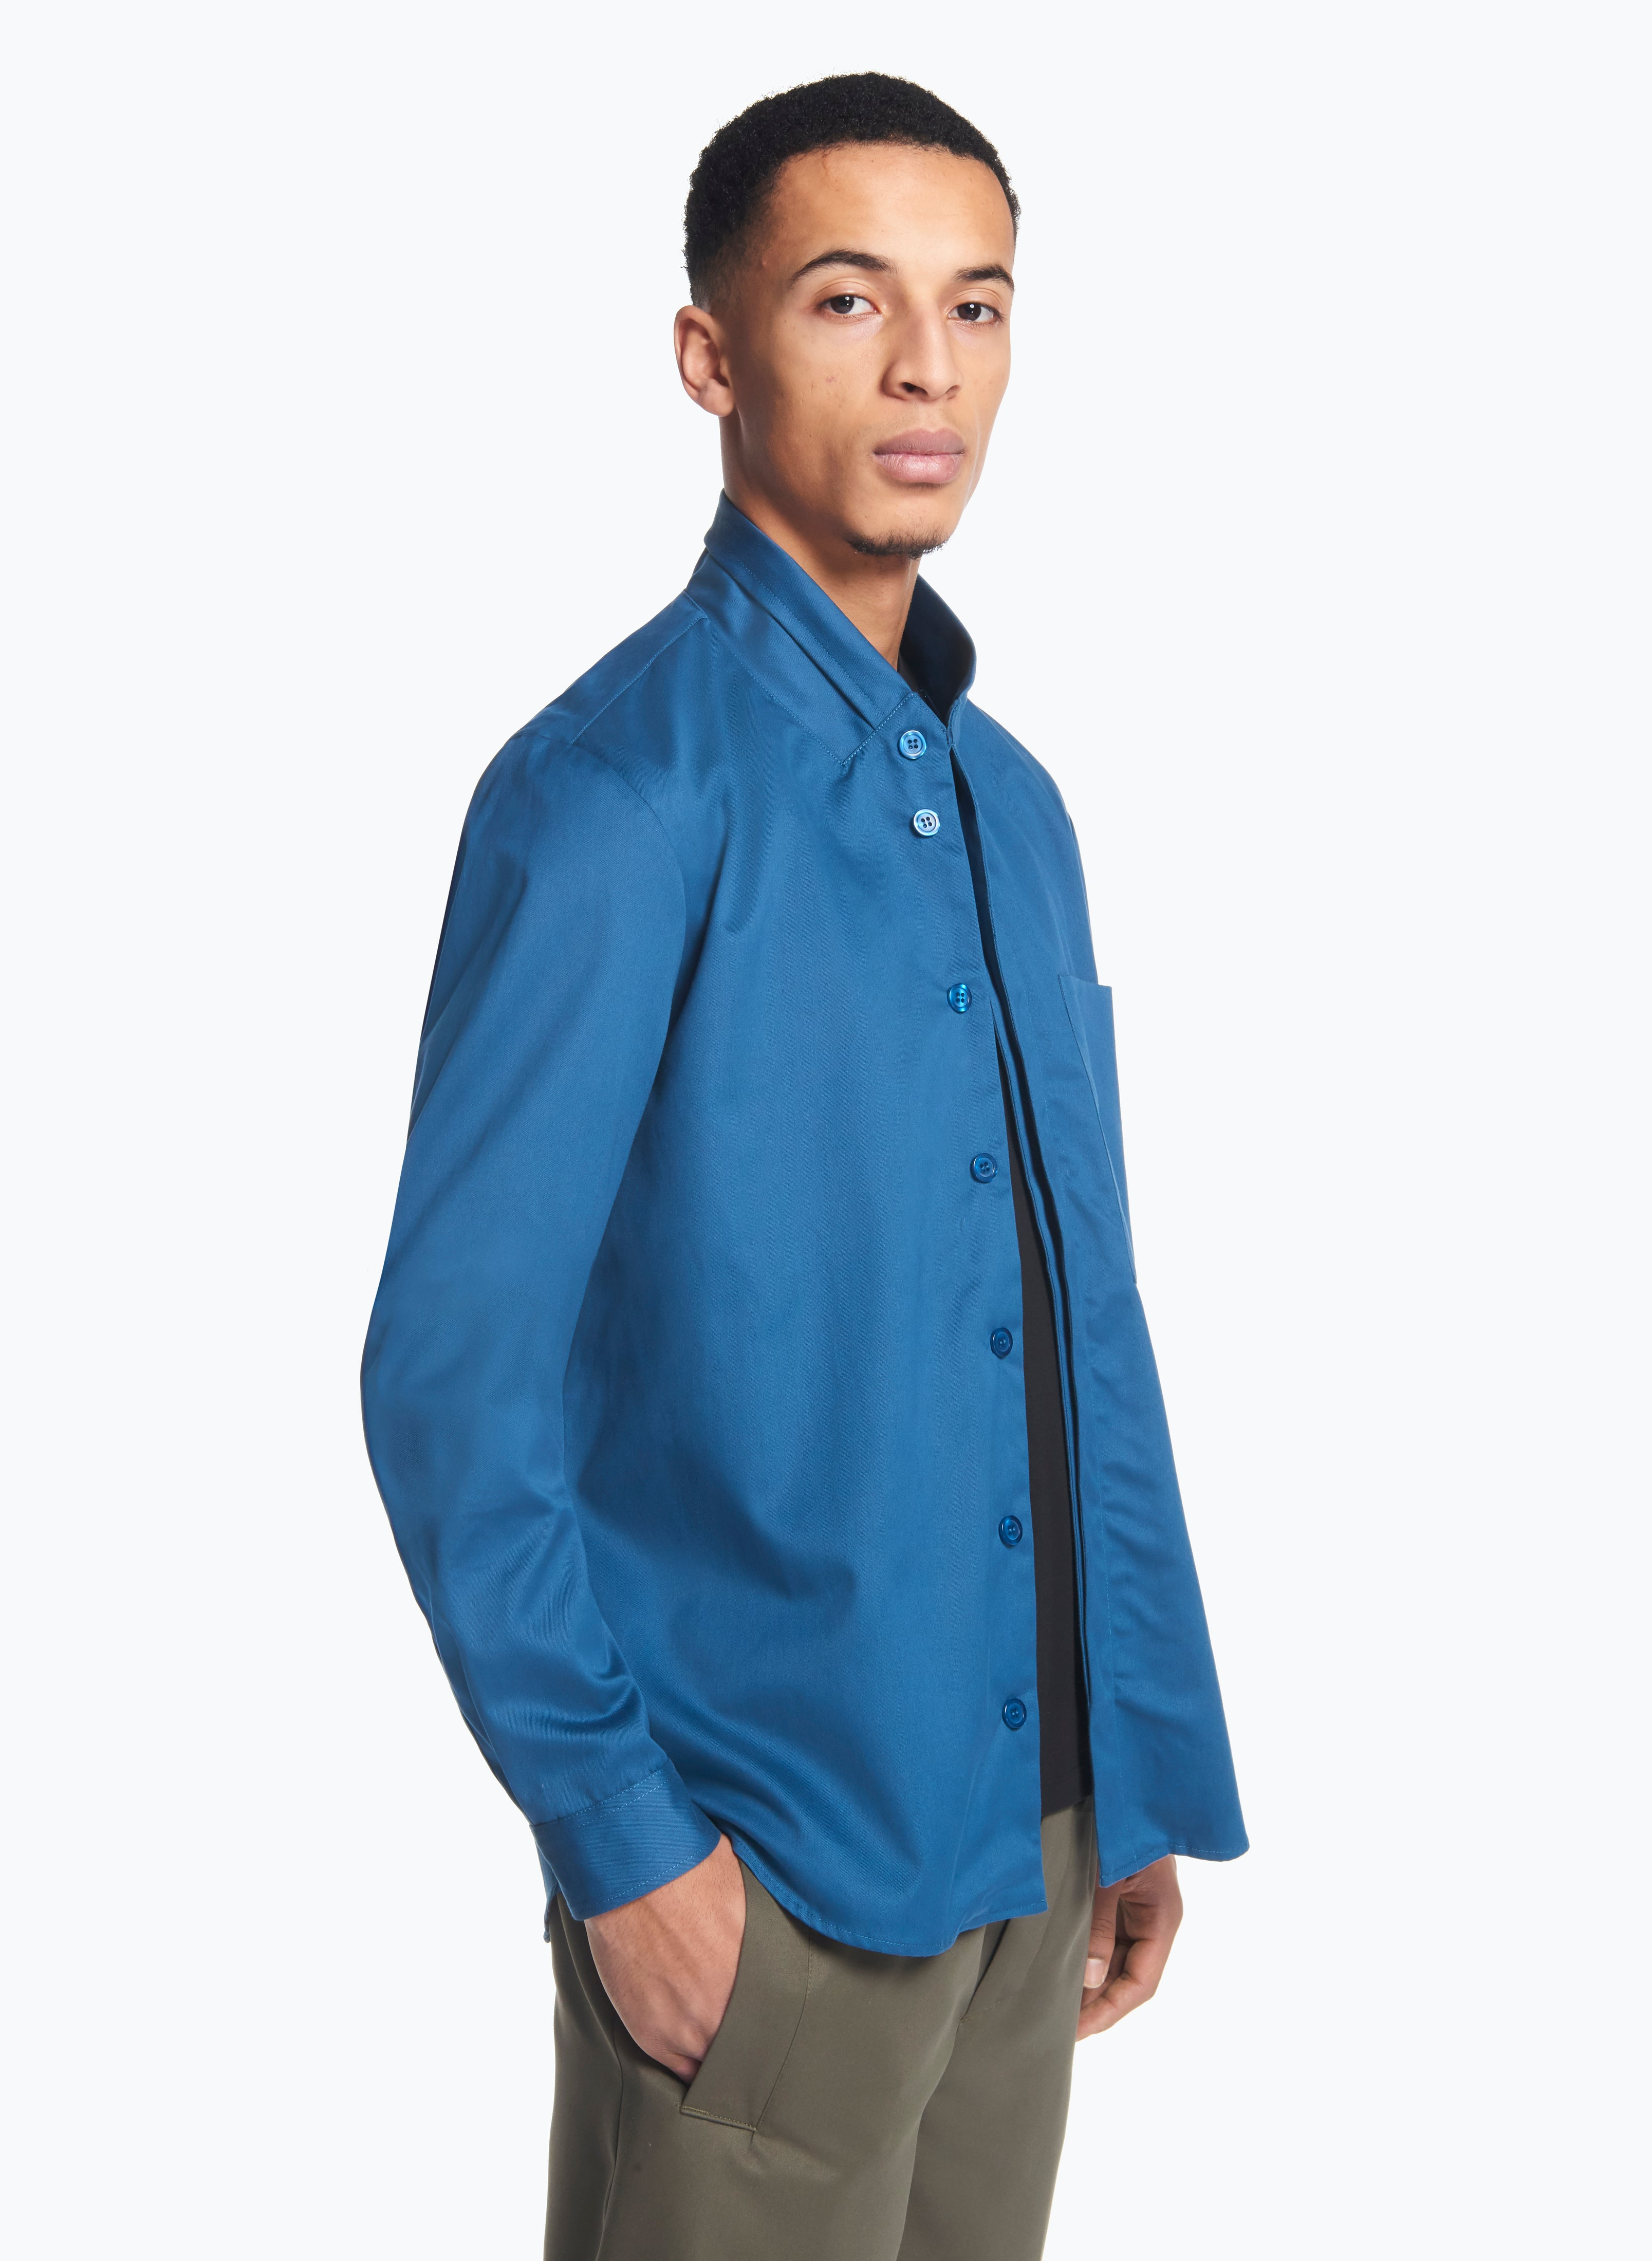 Double Collar Overshirt in Petrol Gabardine